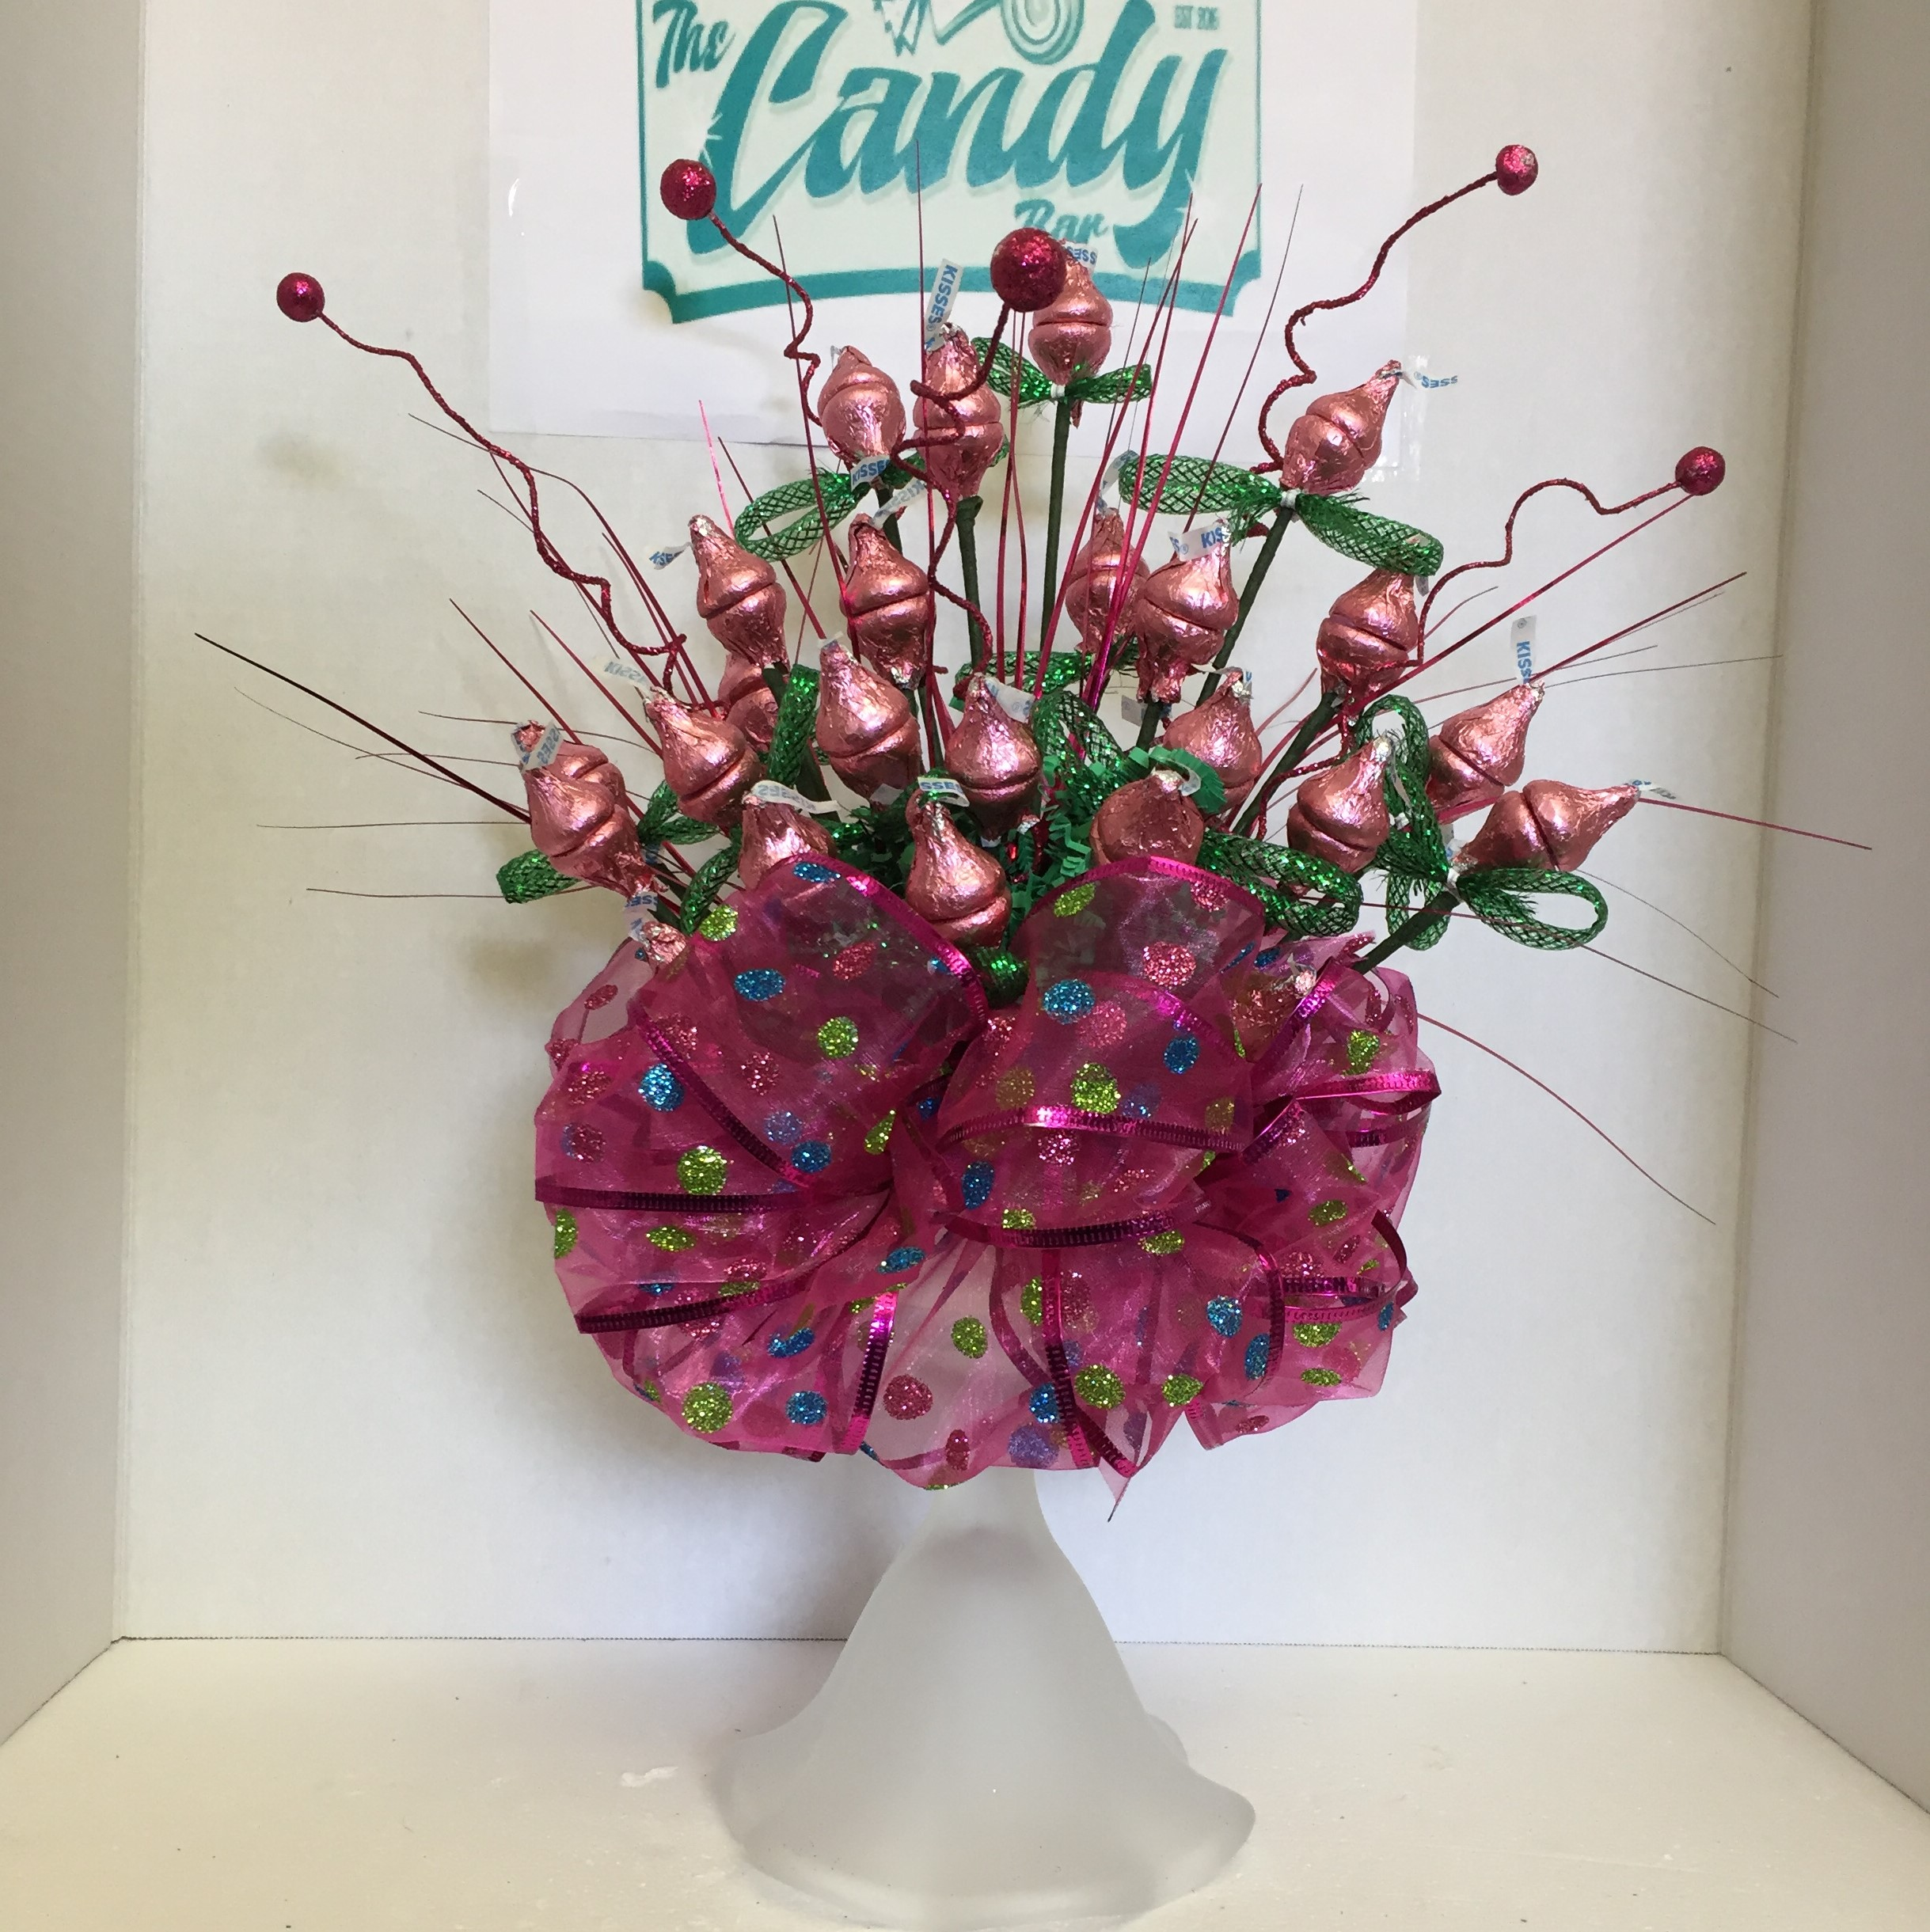 Shop | The Candy Bar | Candy Arrangements for Every Occassion